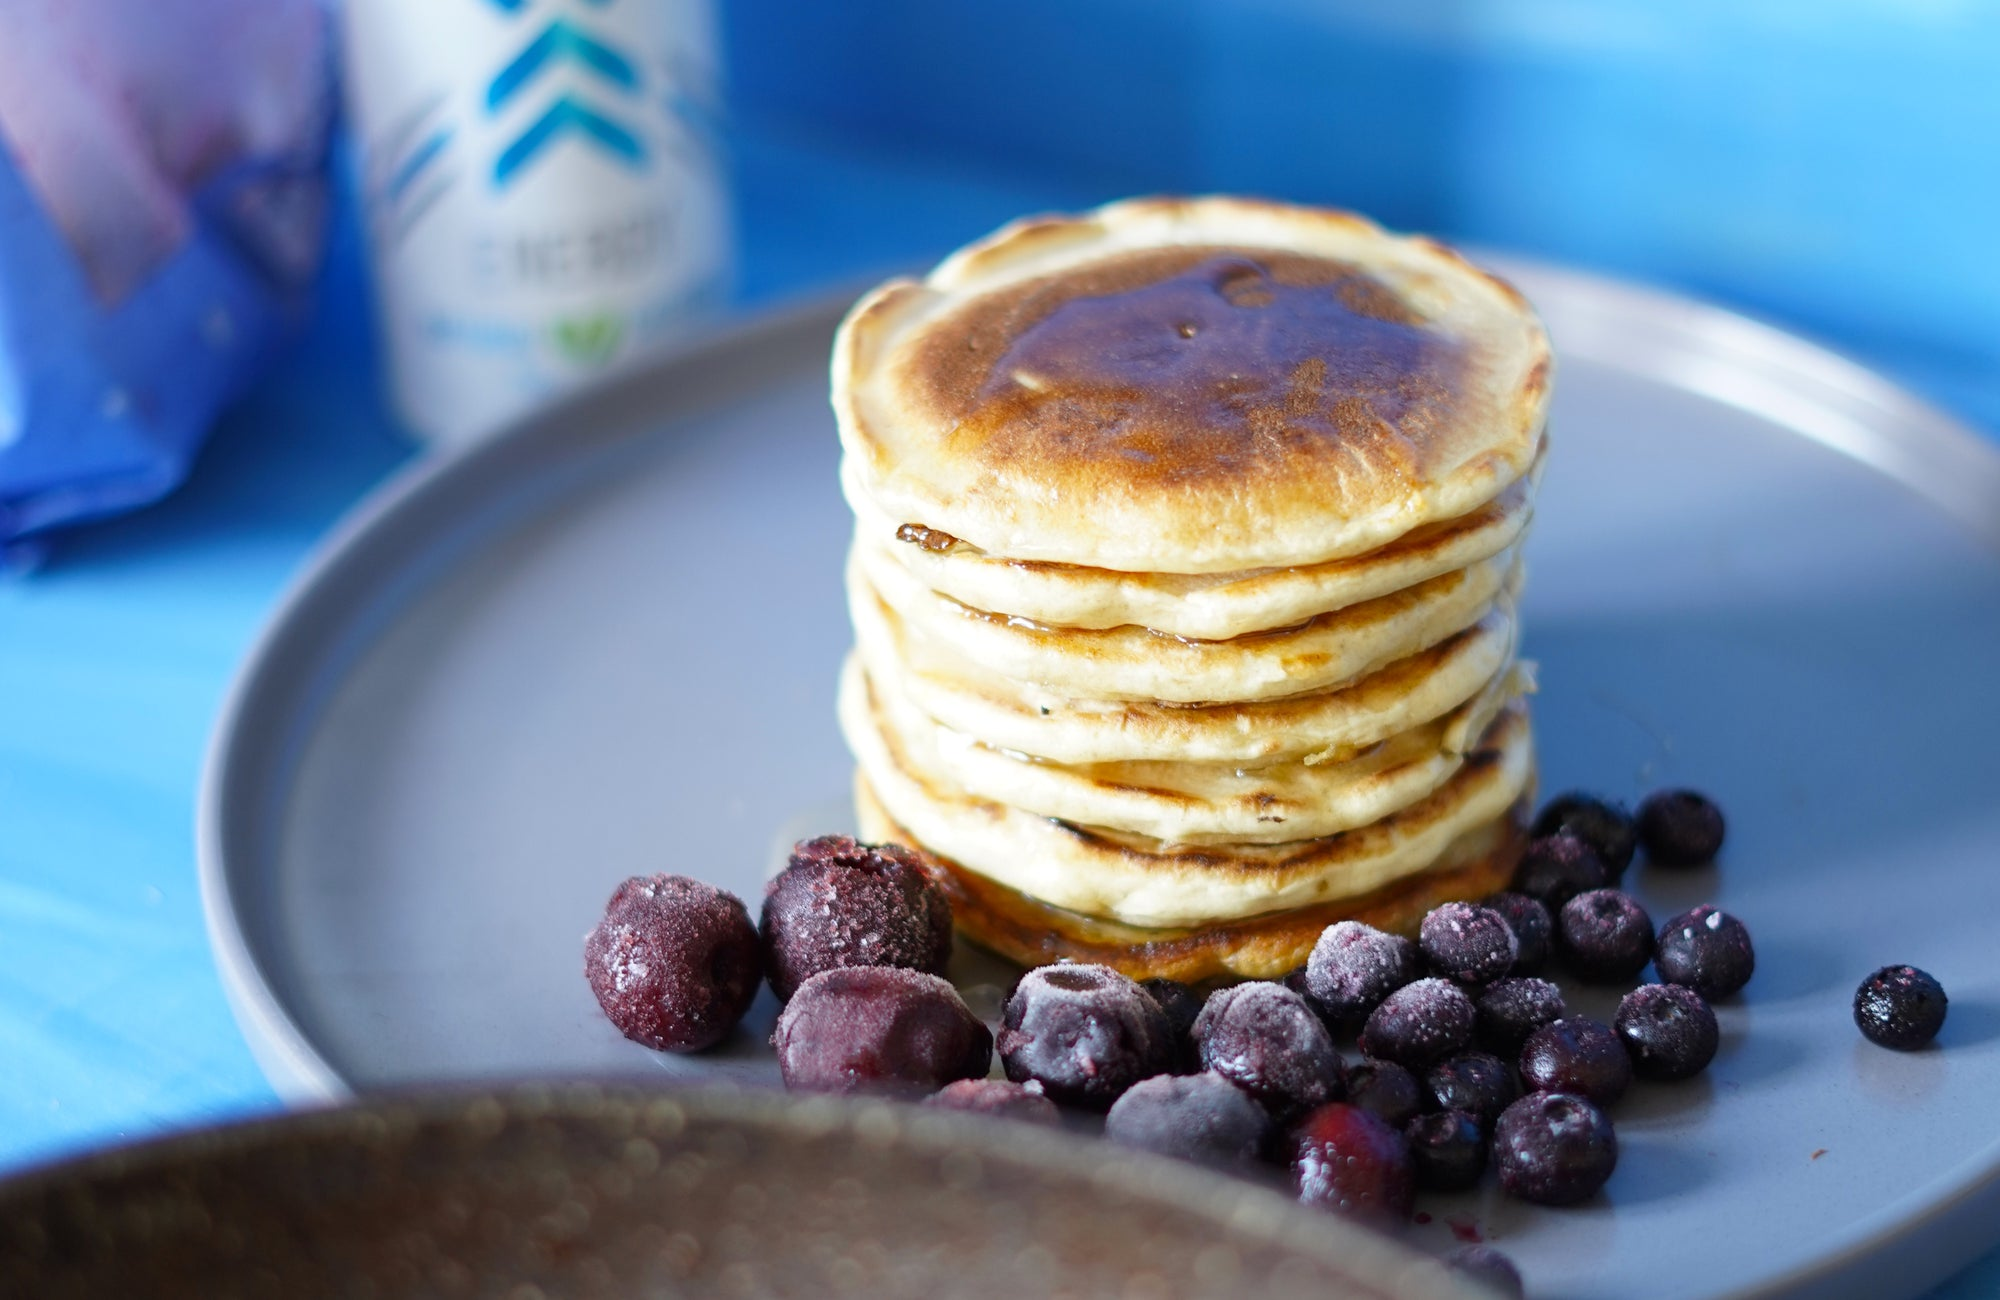 ZERO SUGAR XITE PANCAKE RECIPE {VEGAN}